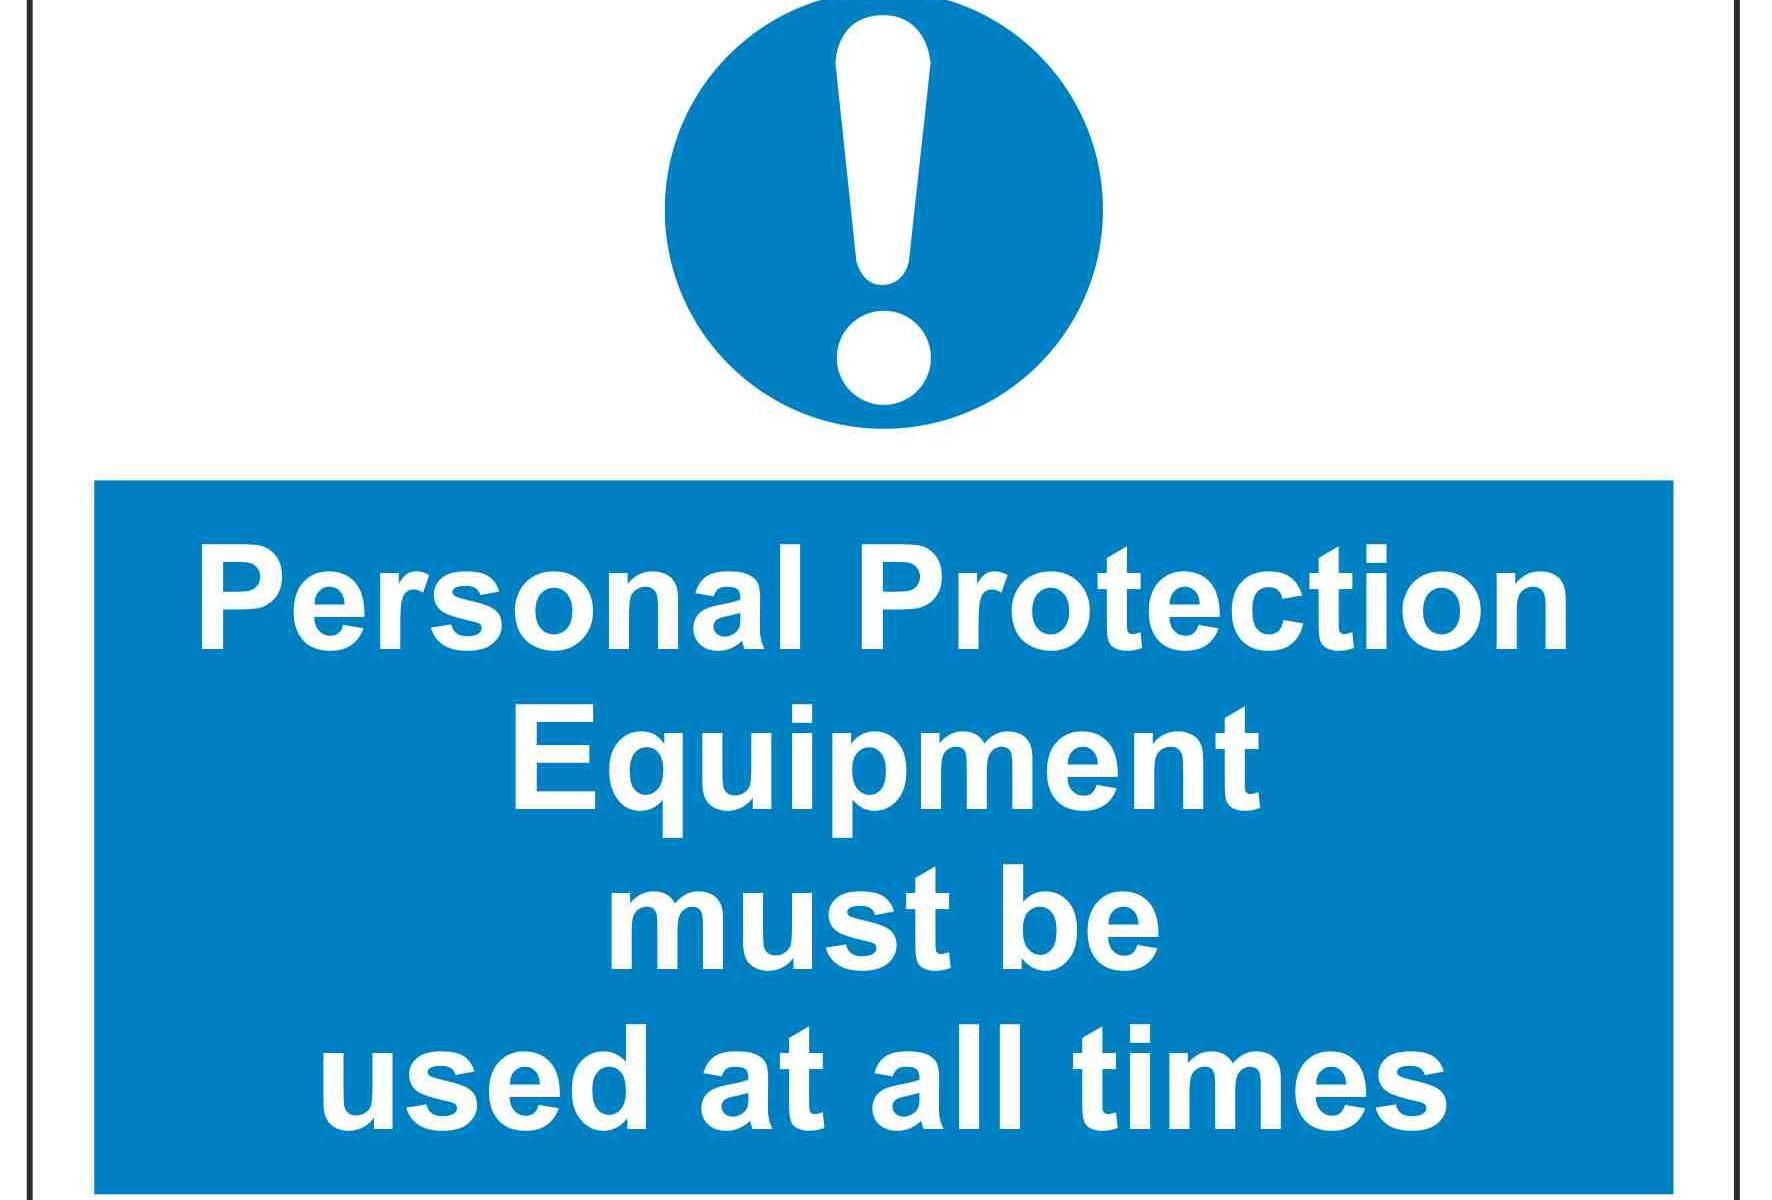 Personal Protection Equipment must be used at all times